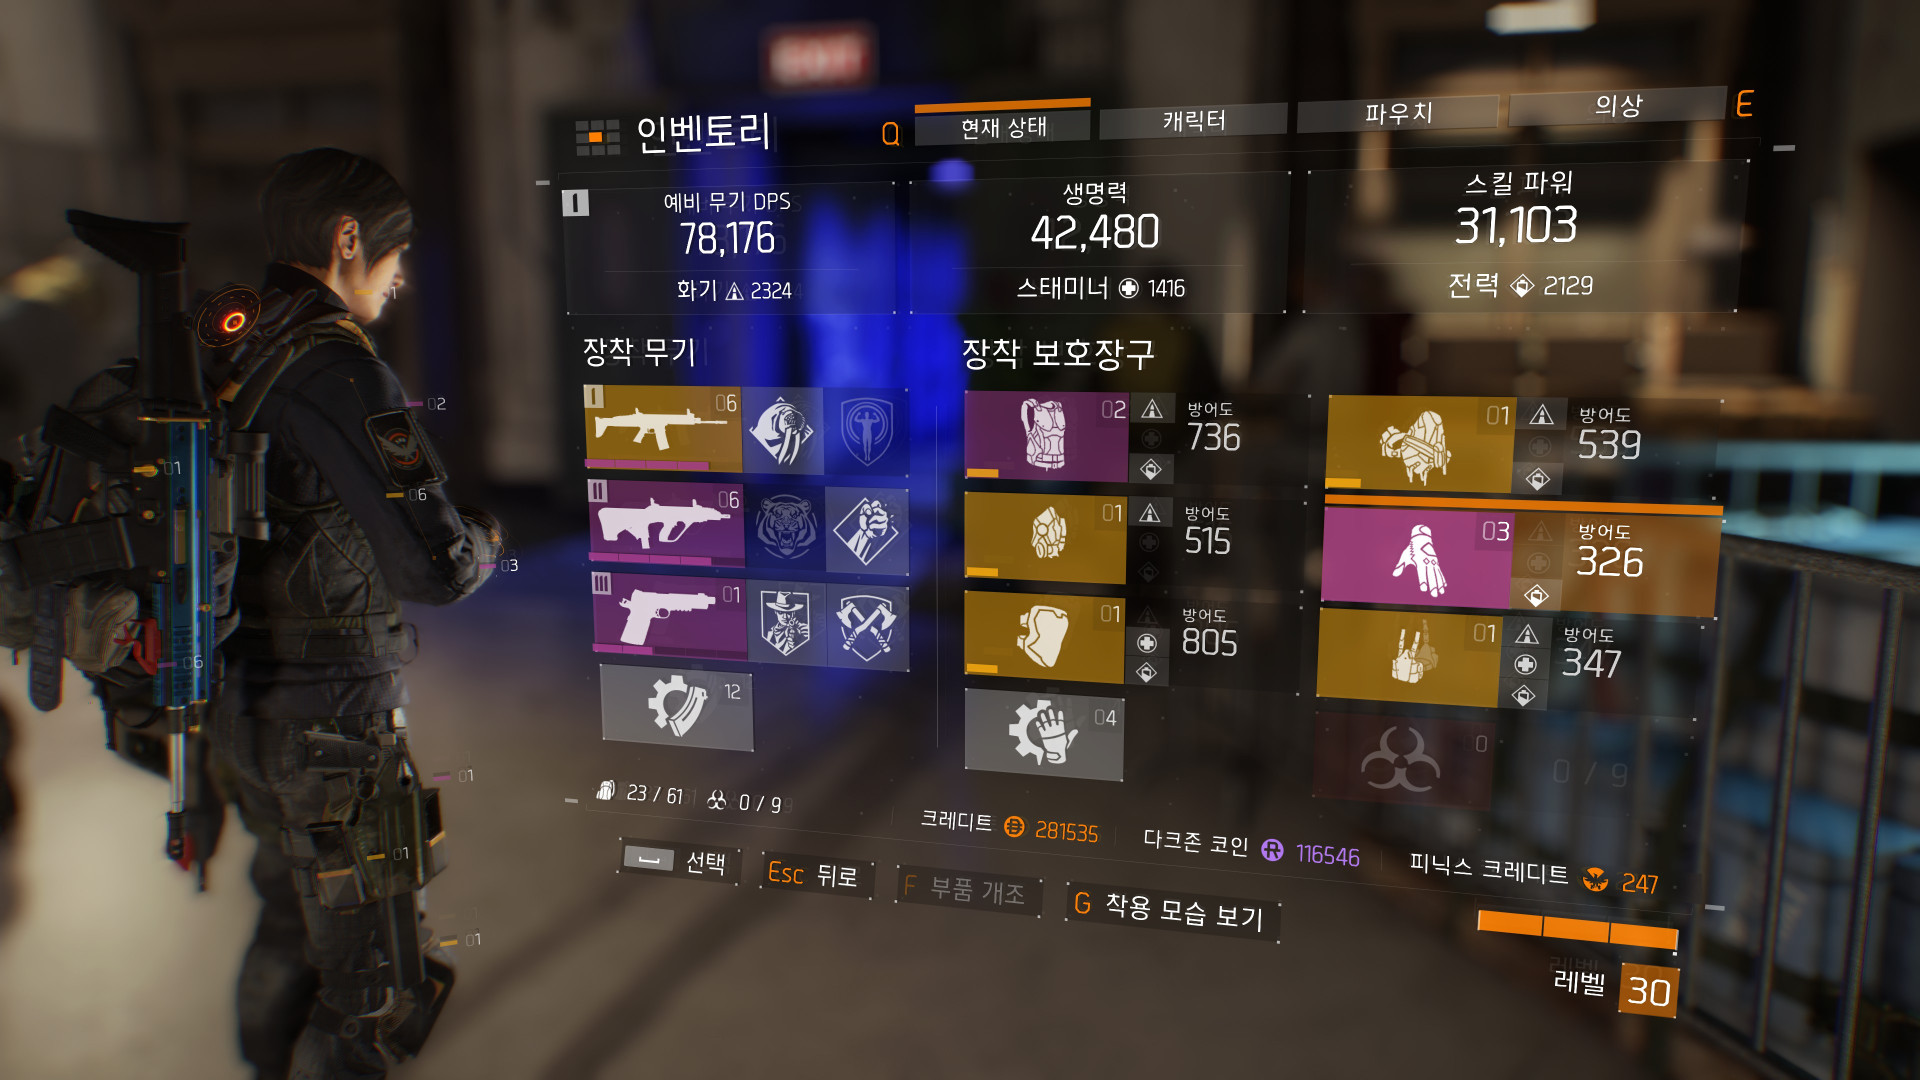 [The Division] 요즘 근황